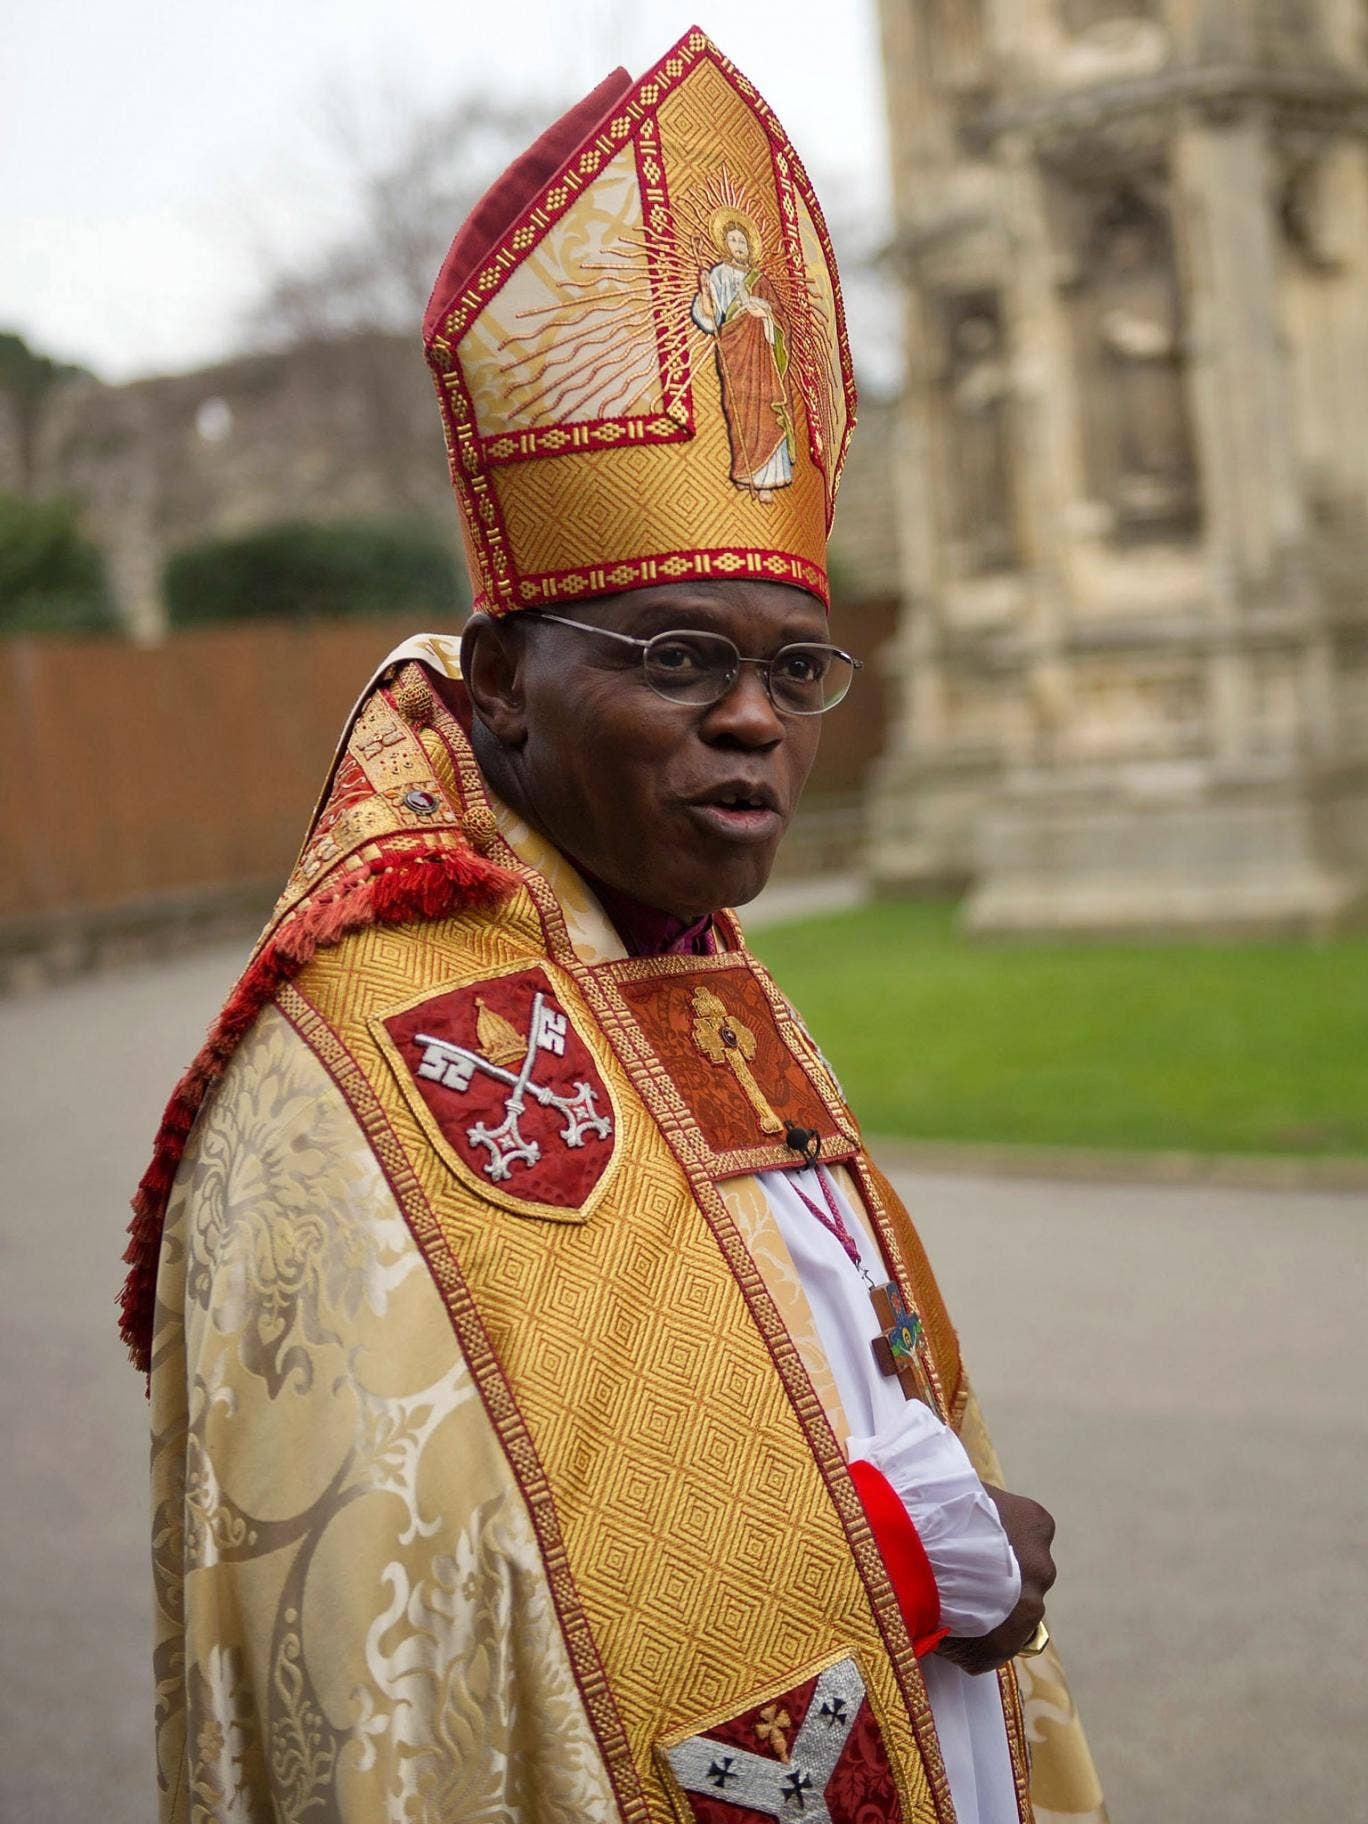 The Archbishop of York John Sentamu has been treated for prostate cancer